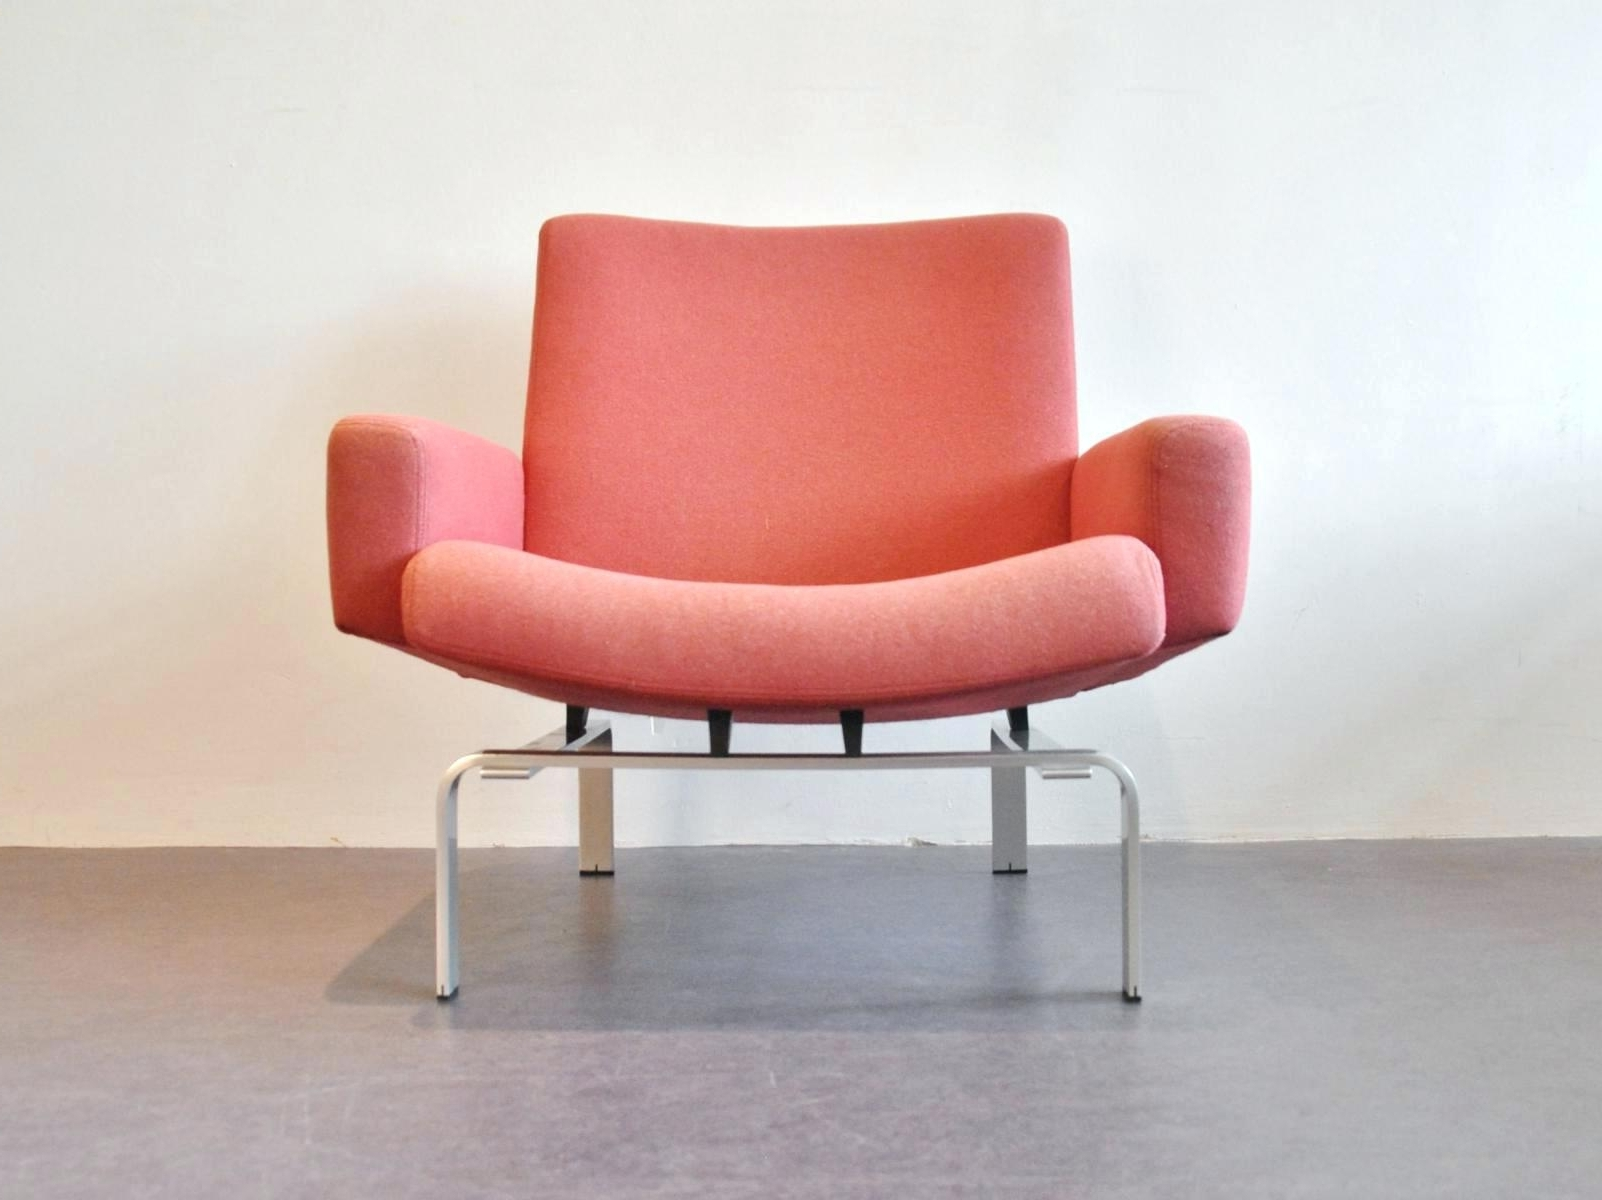 Popular Hot Pink Chaise Lounge Chairs With Regard To Pink Beach Lounge Chair • Lounge Chairs Ideas (View 8 of 15)